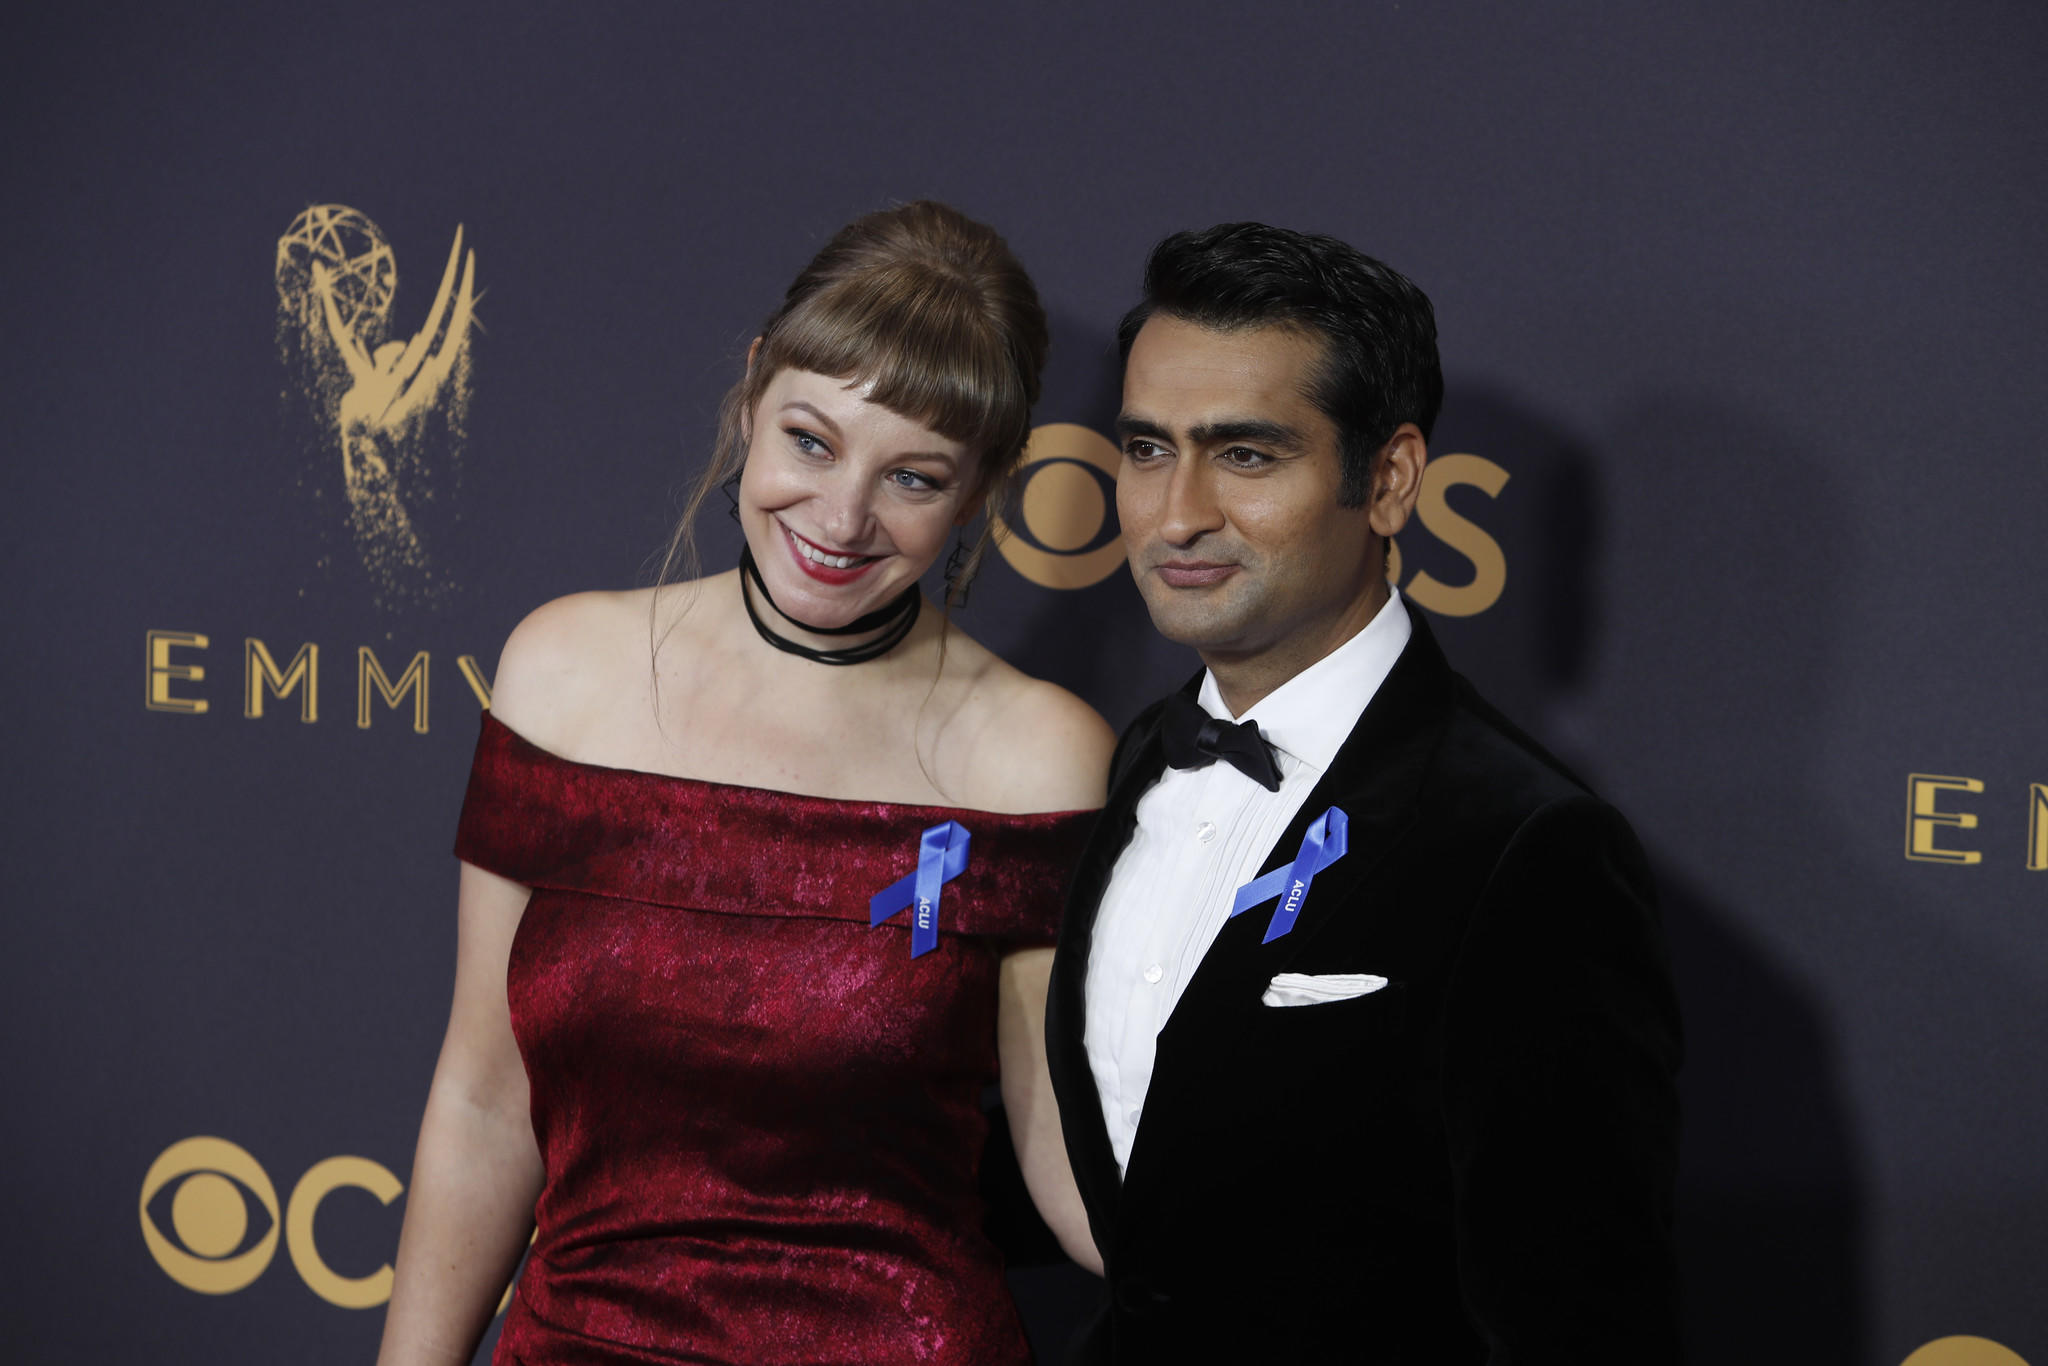 Emily V. Gordon and Kumail Nanjiani sport ACLU ribbons on the Emmy red carpet. (Kirk McKoy / Los Angeles Times)